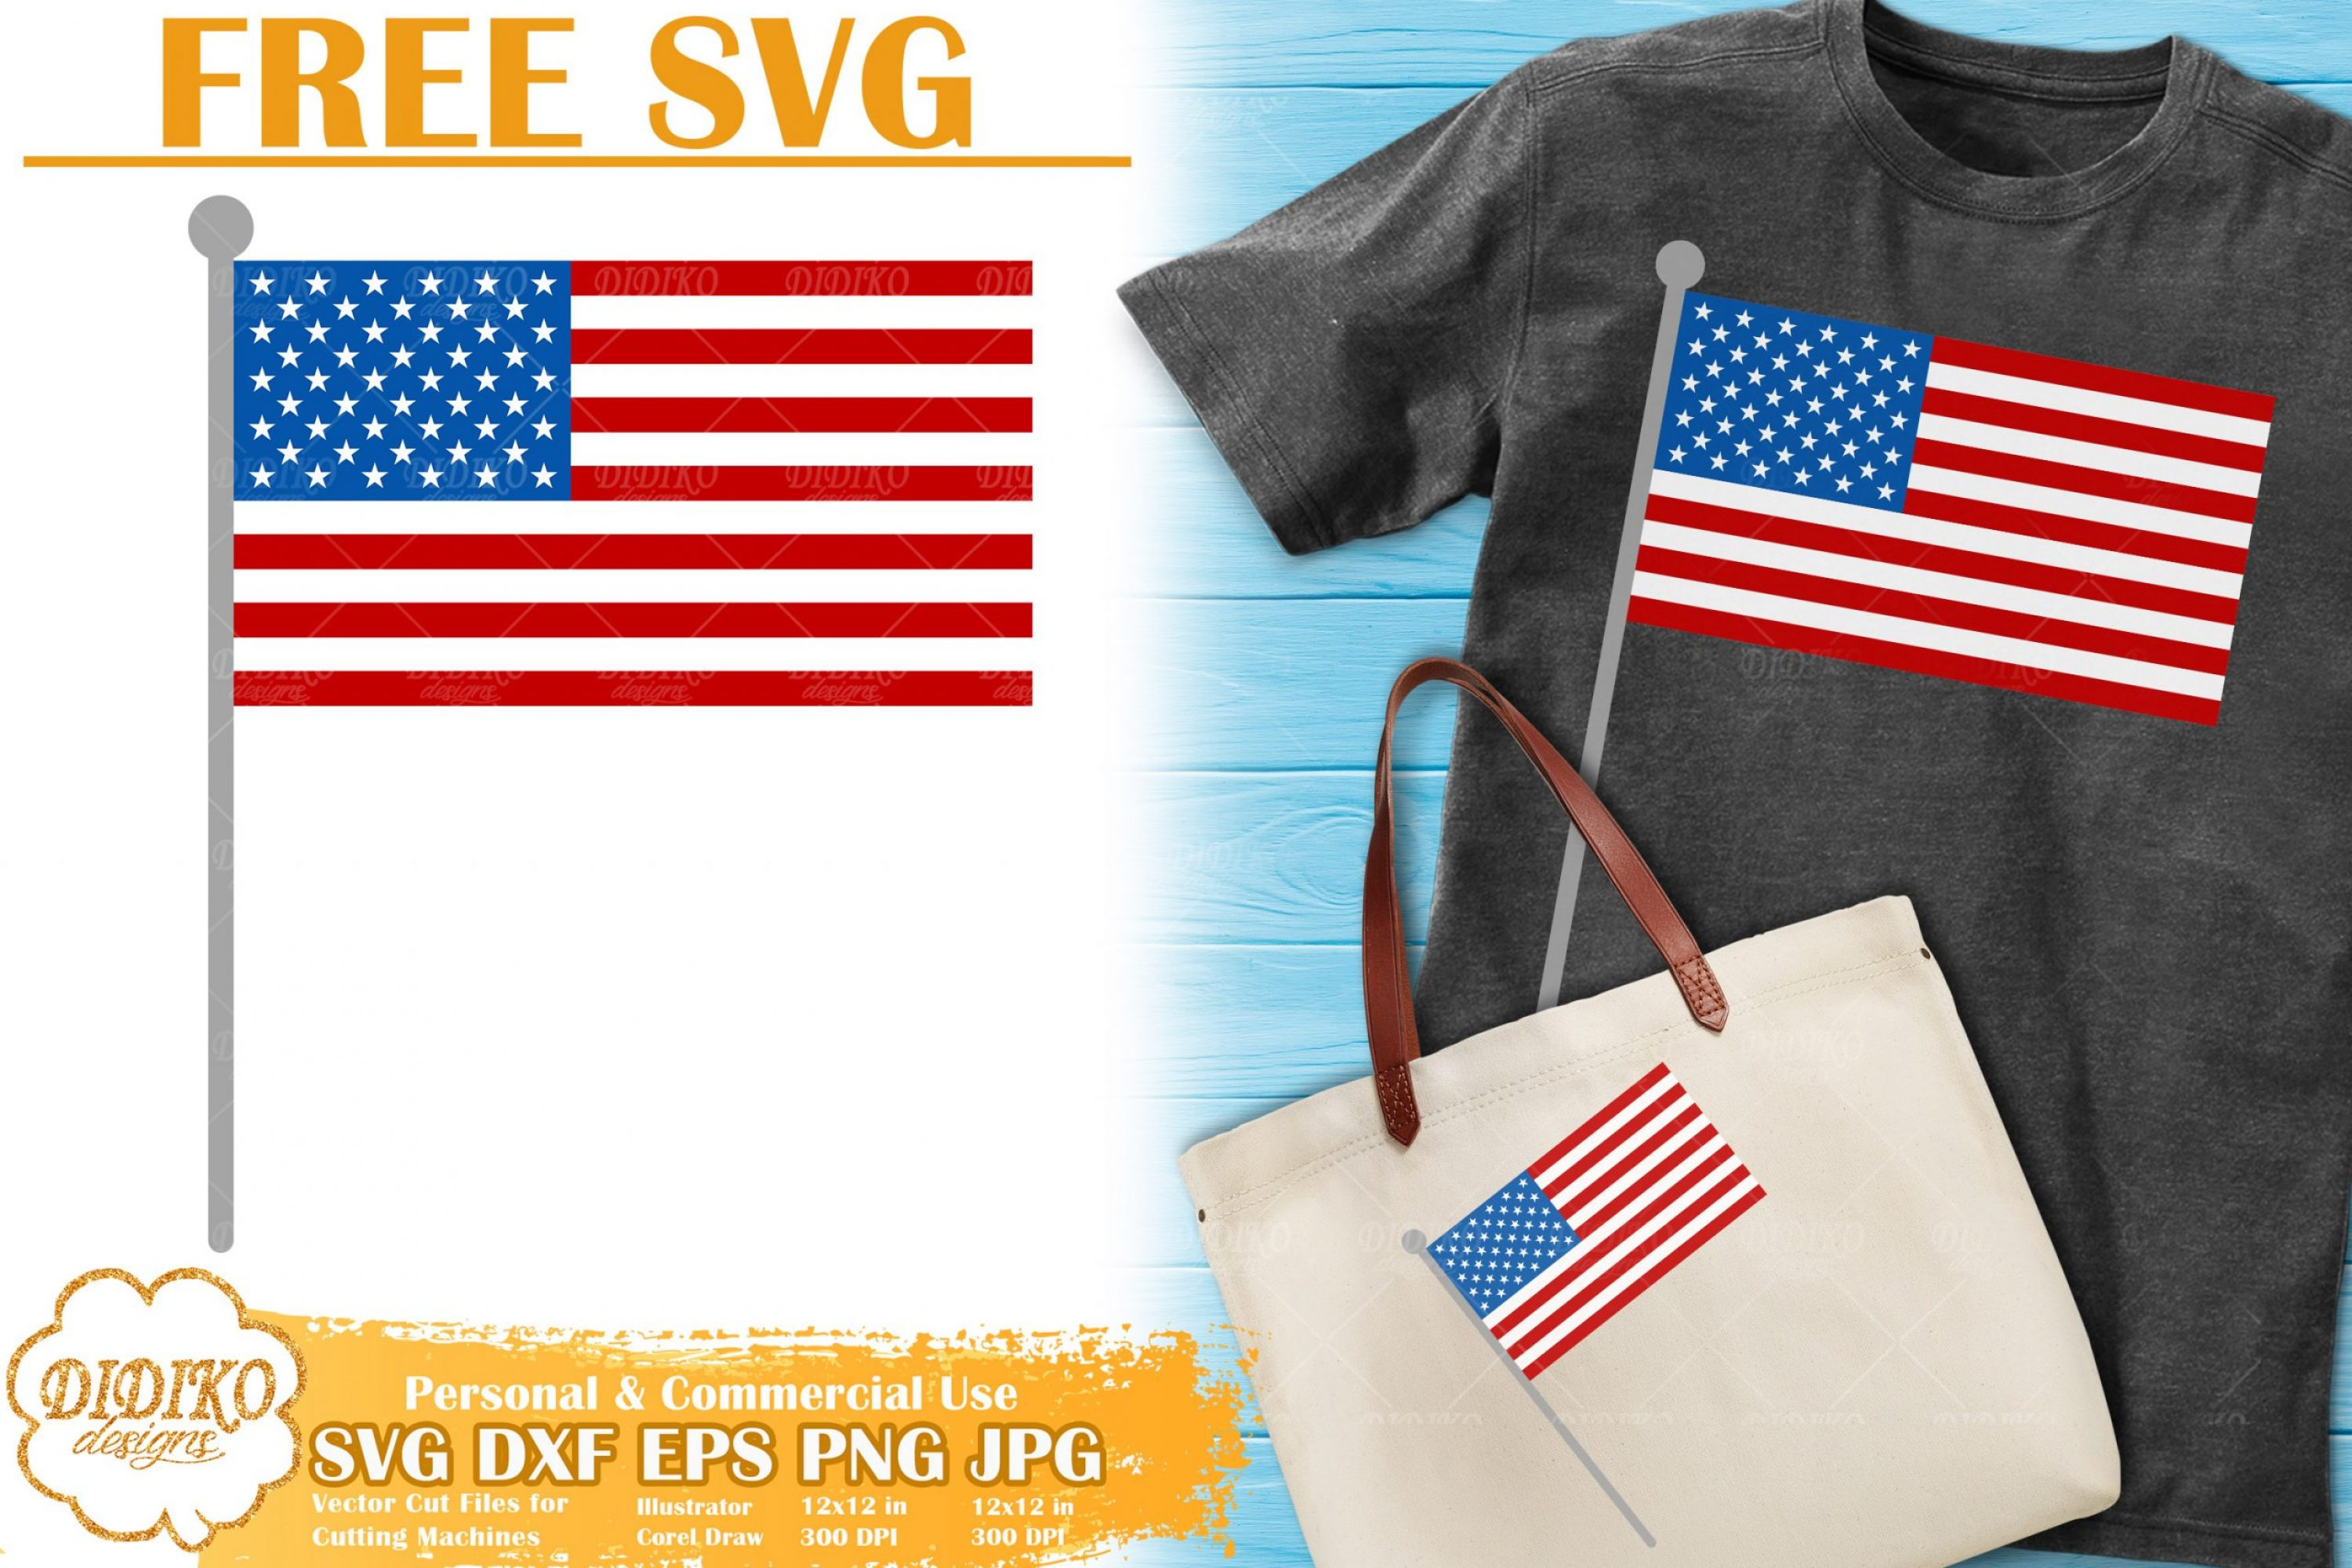 American Flag Free SVG | 4th of July Free SVG Cricut